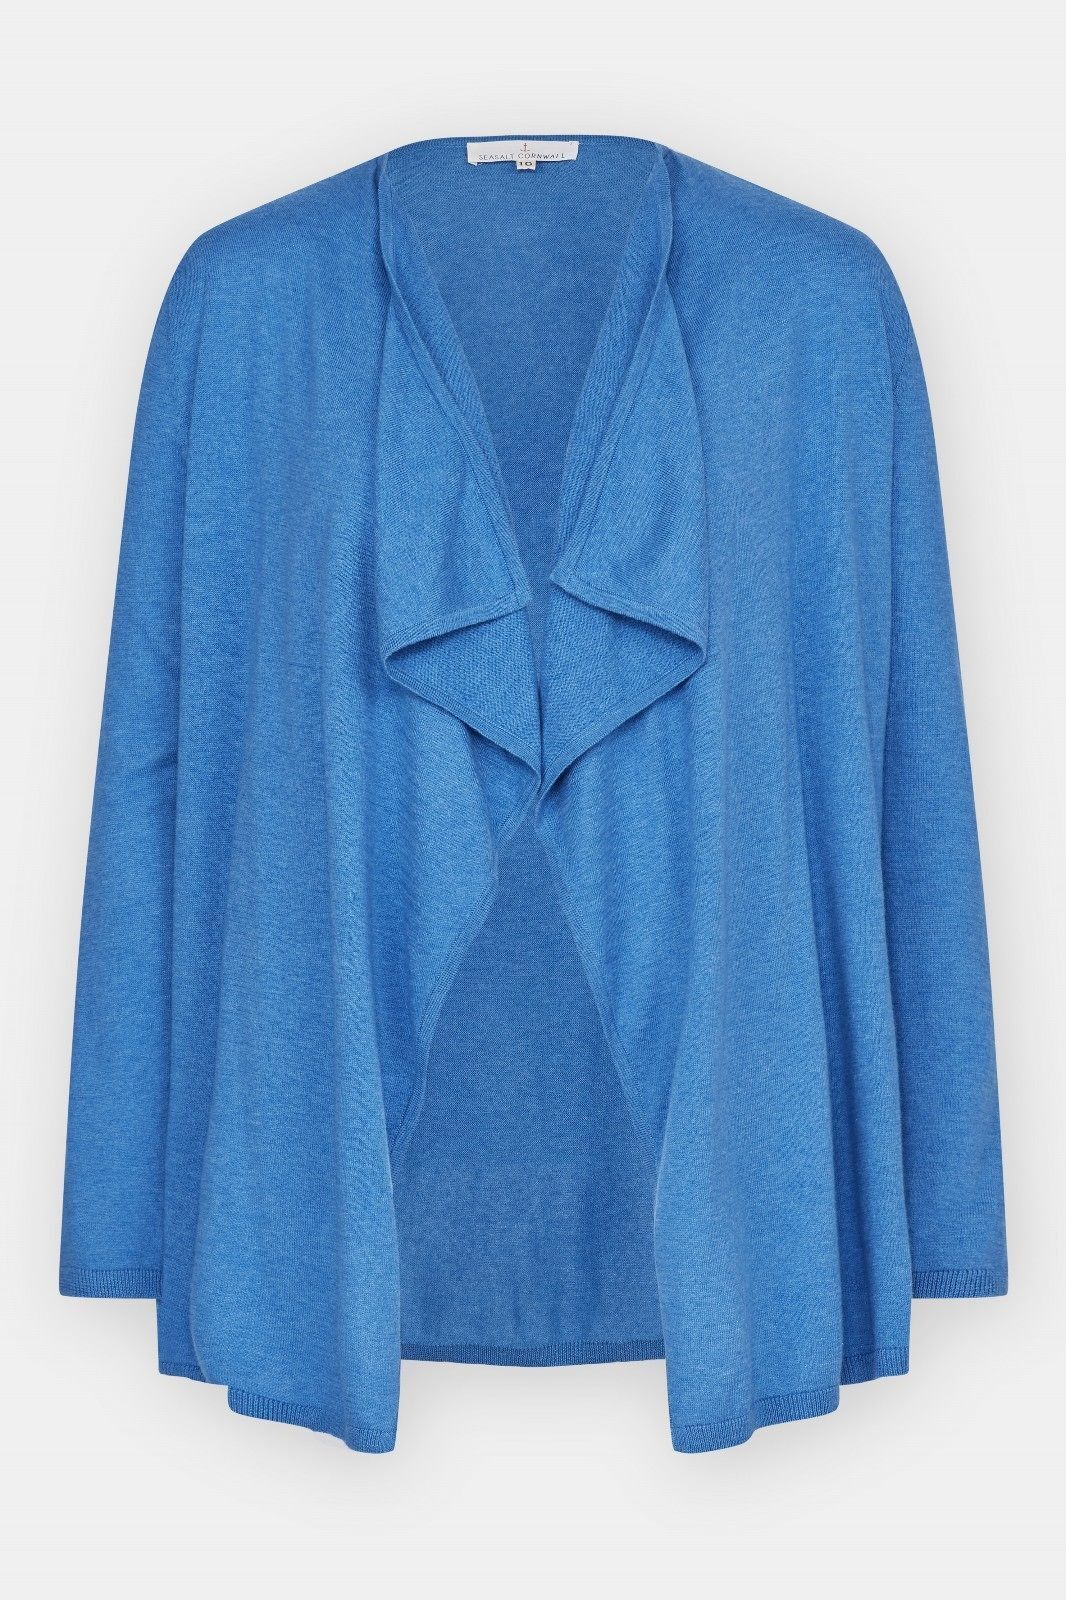 Seasalt Size 12 Oyster Cardigan in Whirl BNWT , FREE UK POSTAGE .